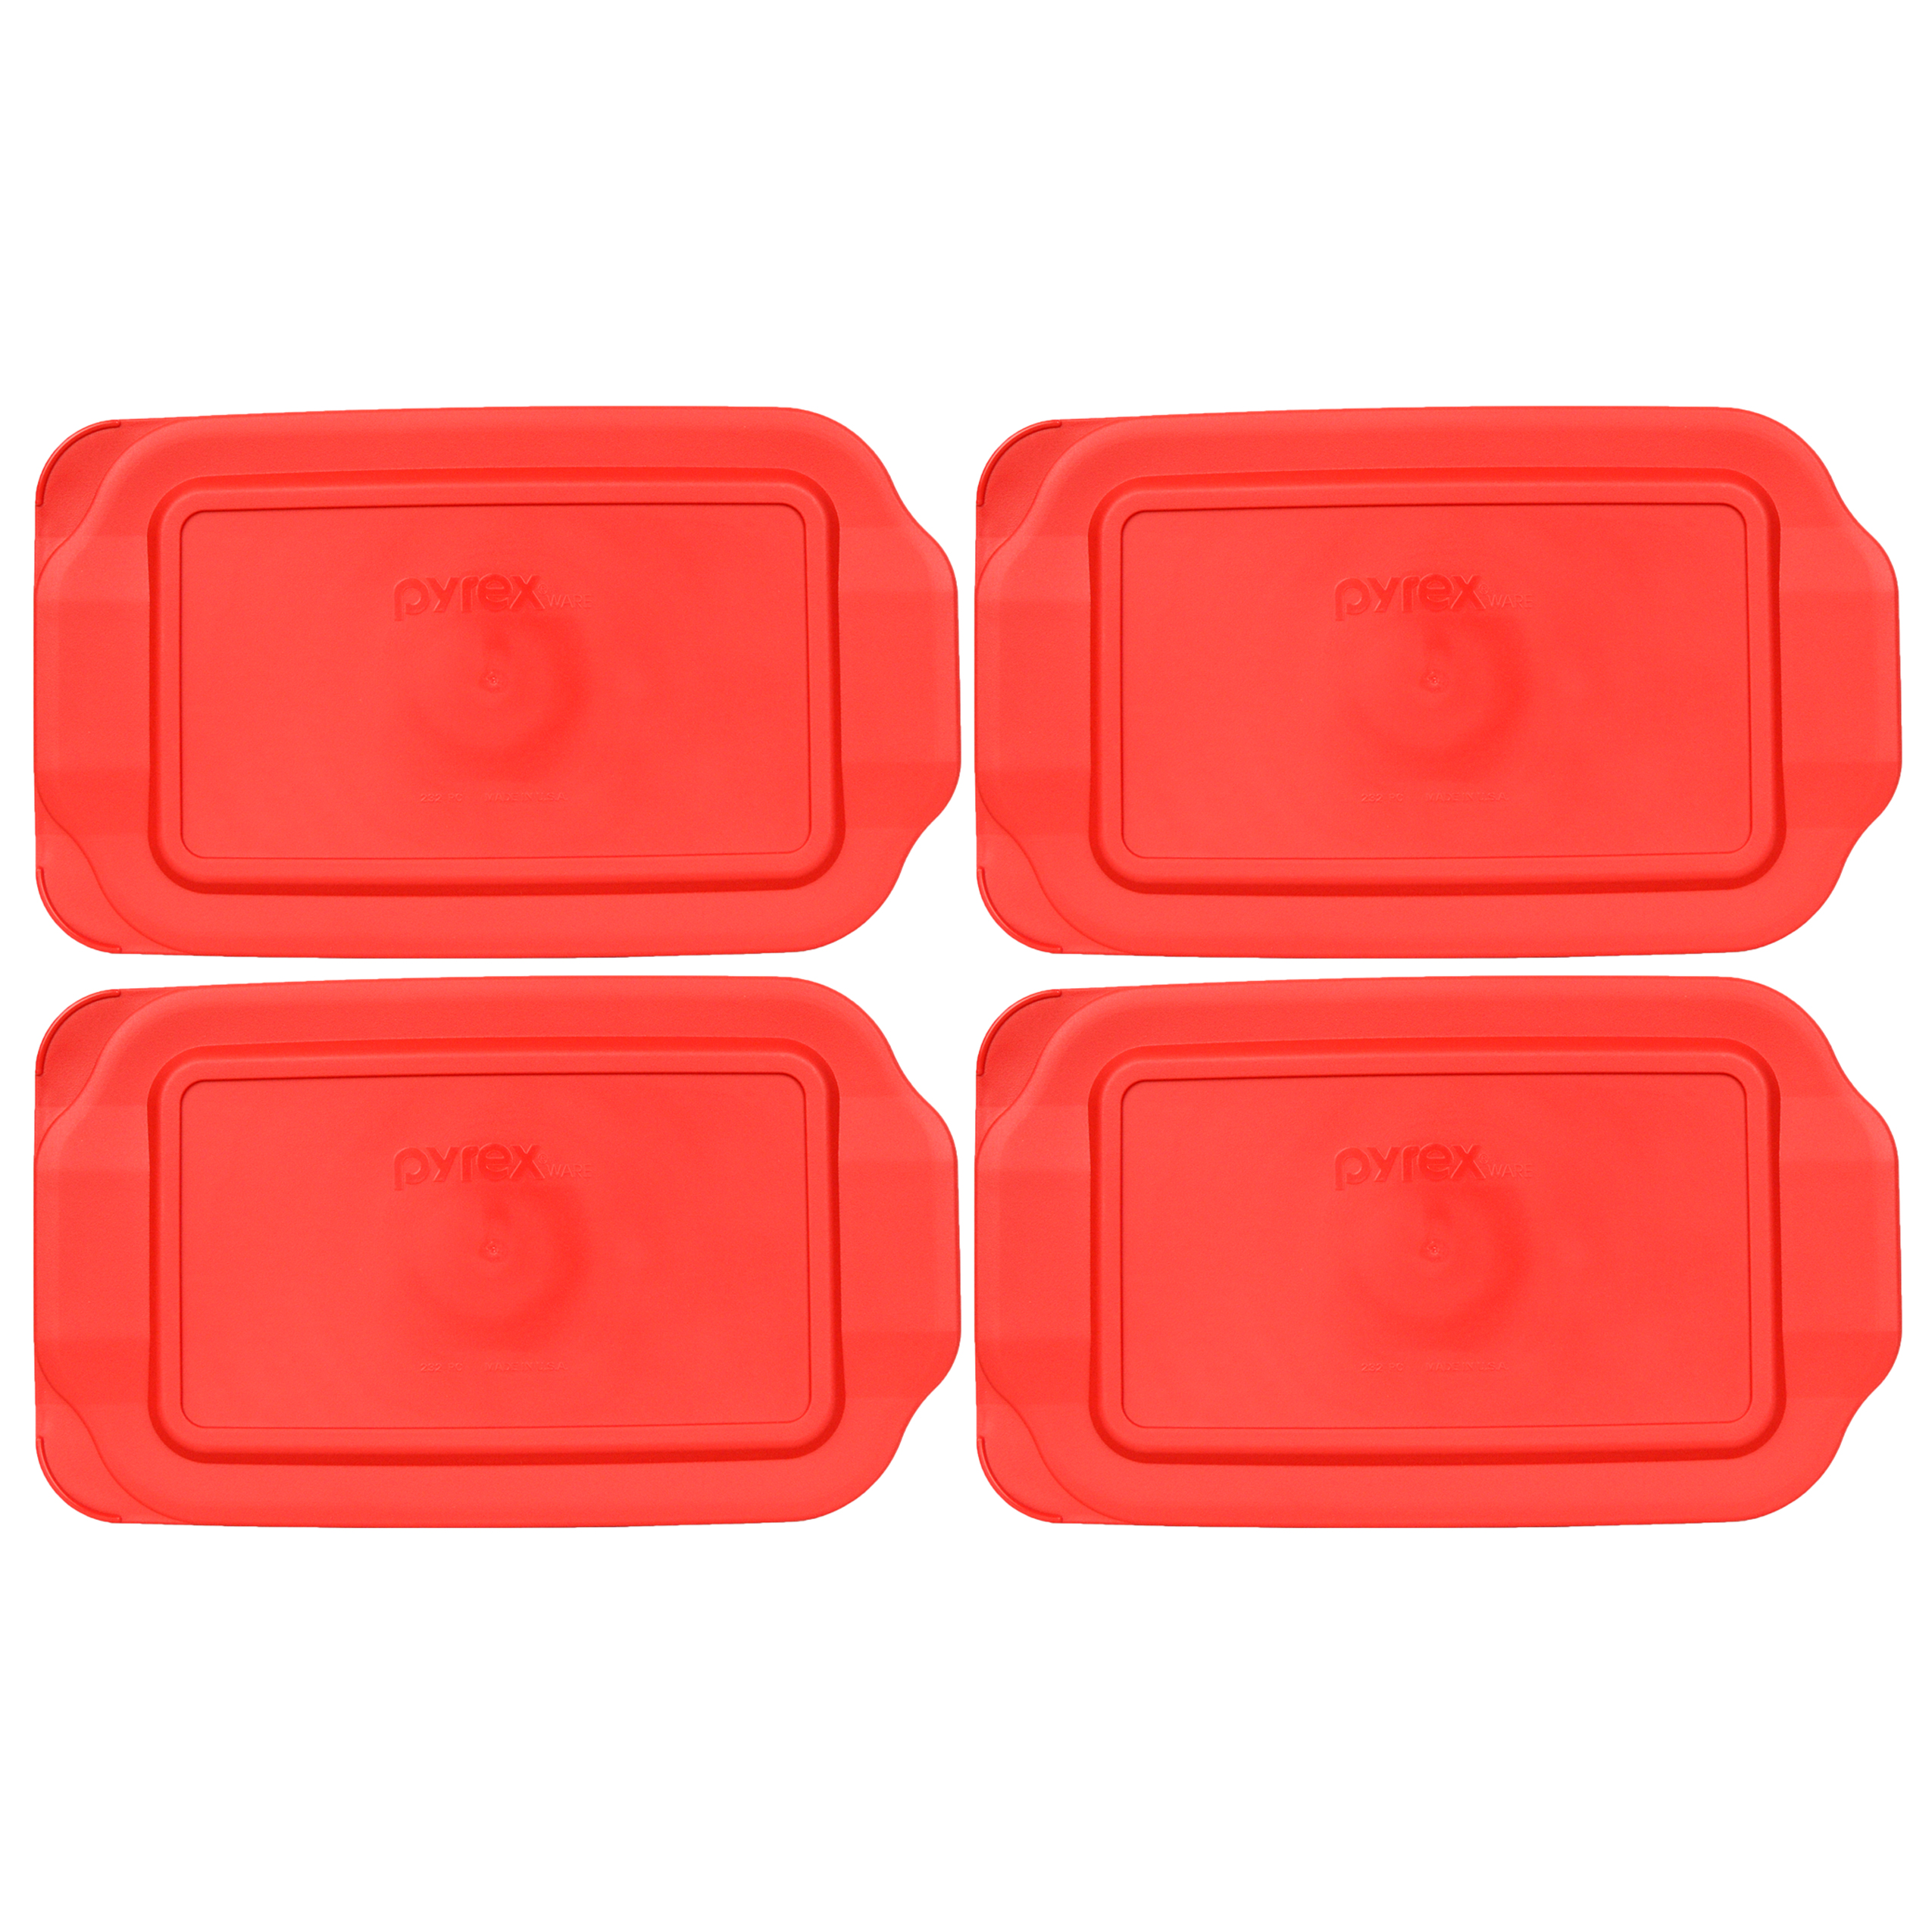 Pyrex Replacement Lid 232-PC 2-Qt Red Plastic Rectangle Cover (4-Pack) for Pyrex 232 Dish (Sold Separately)